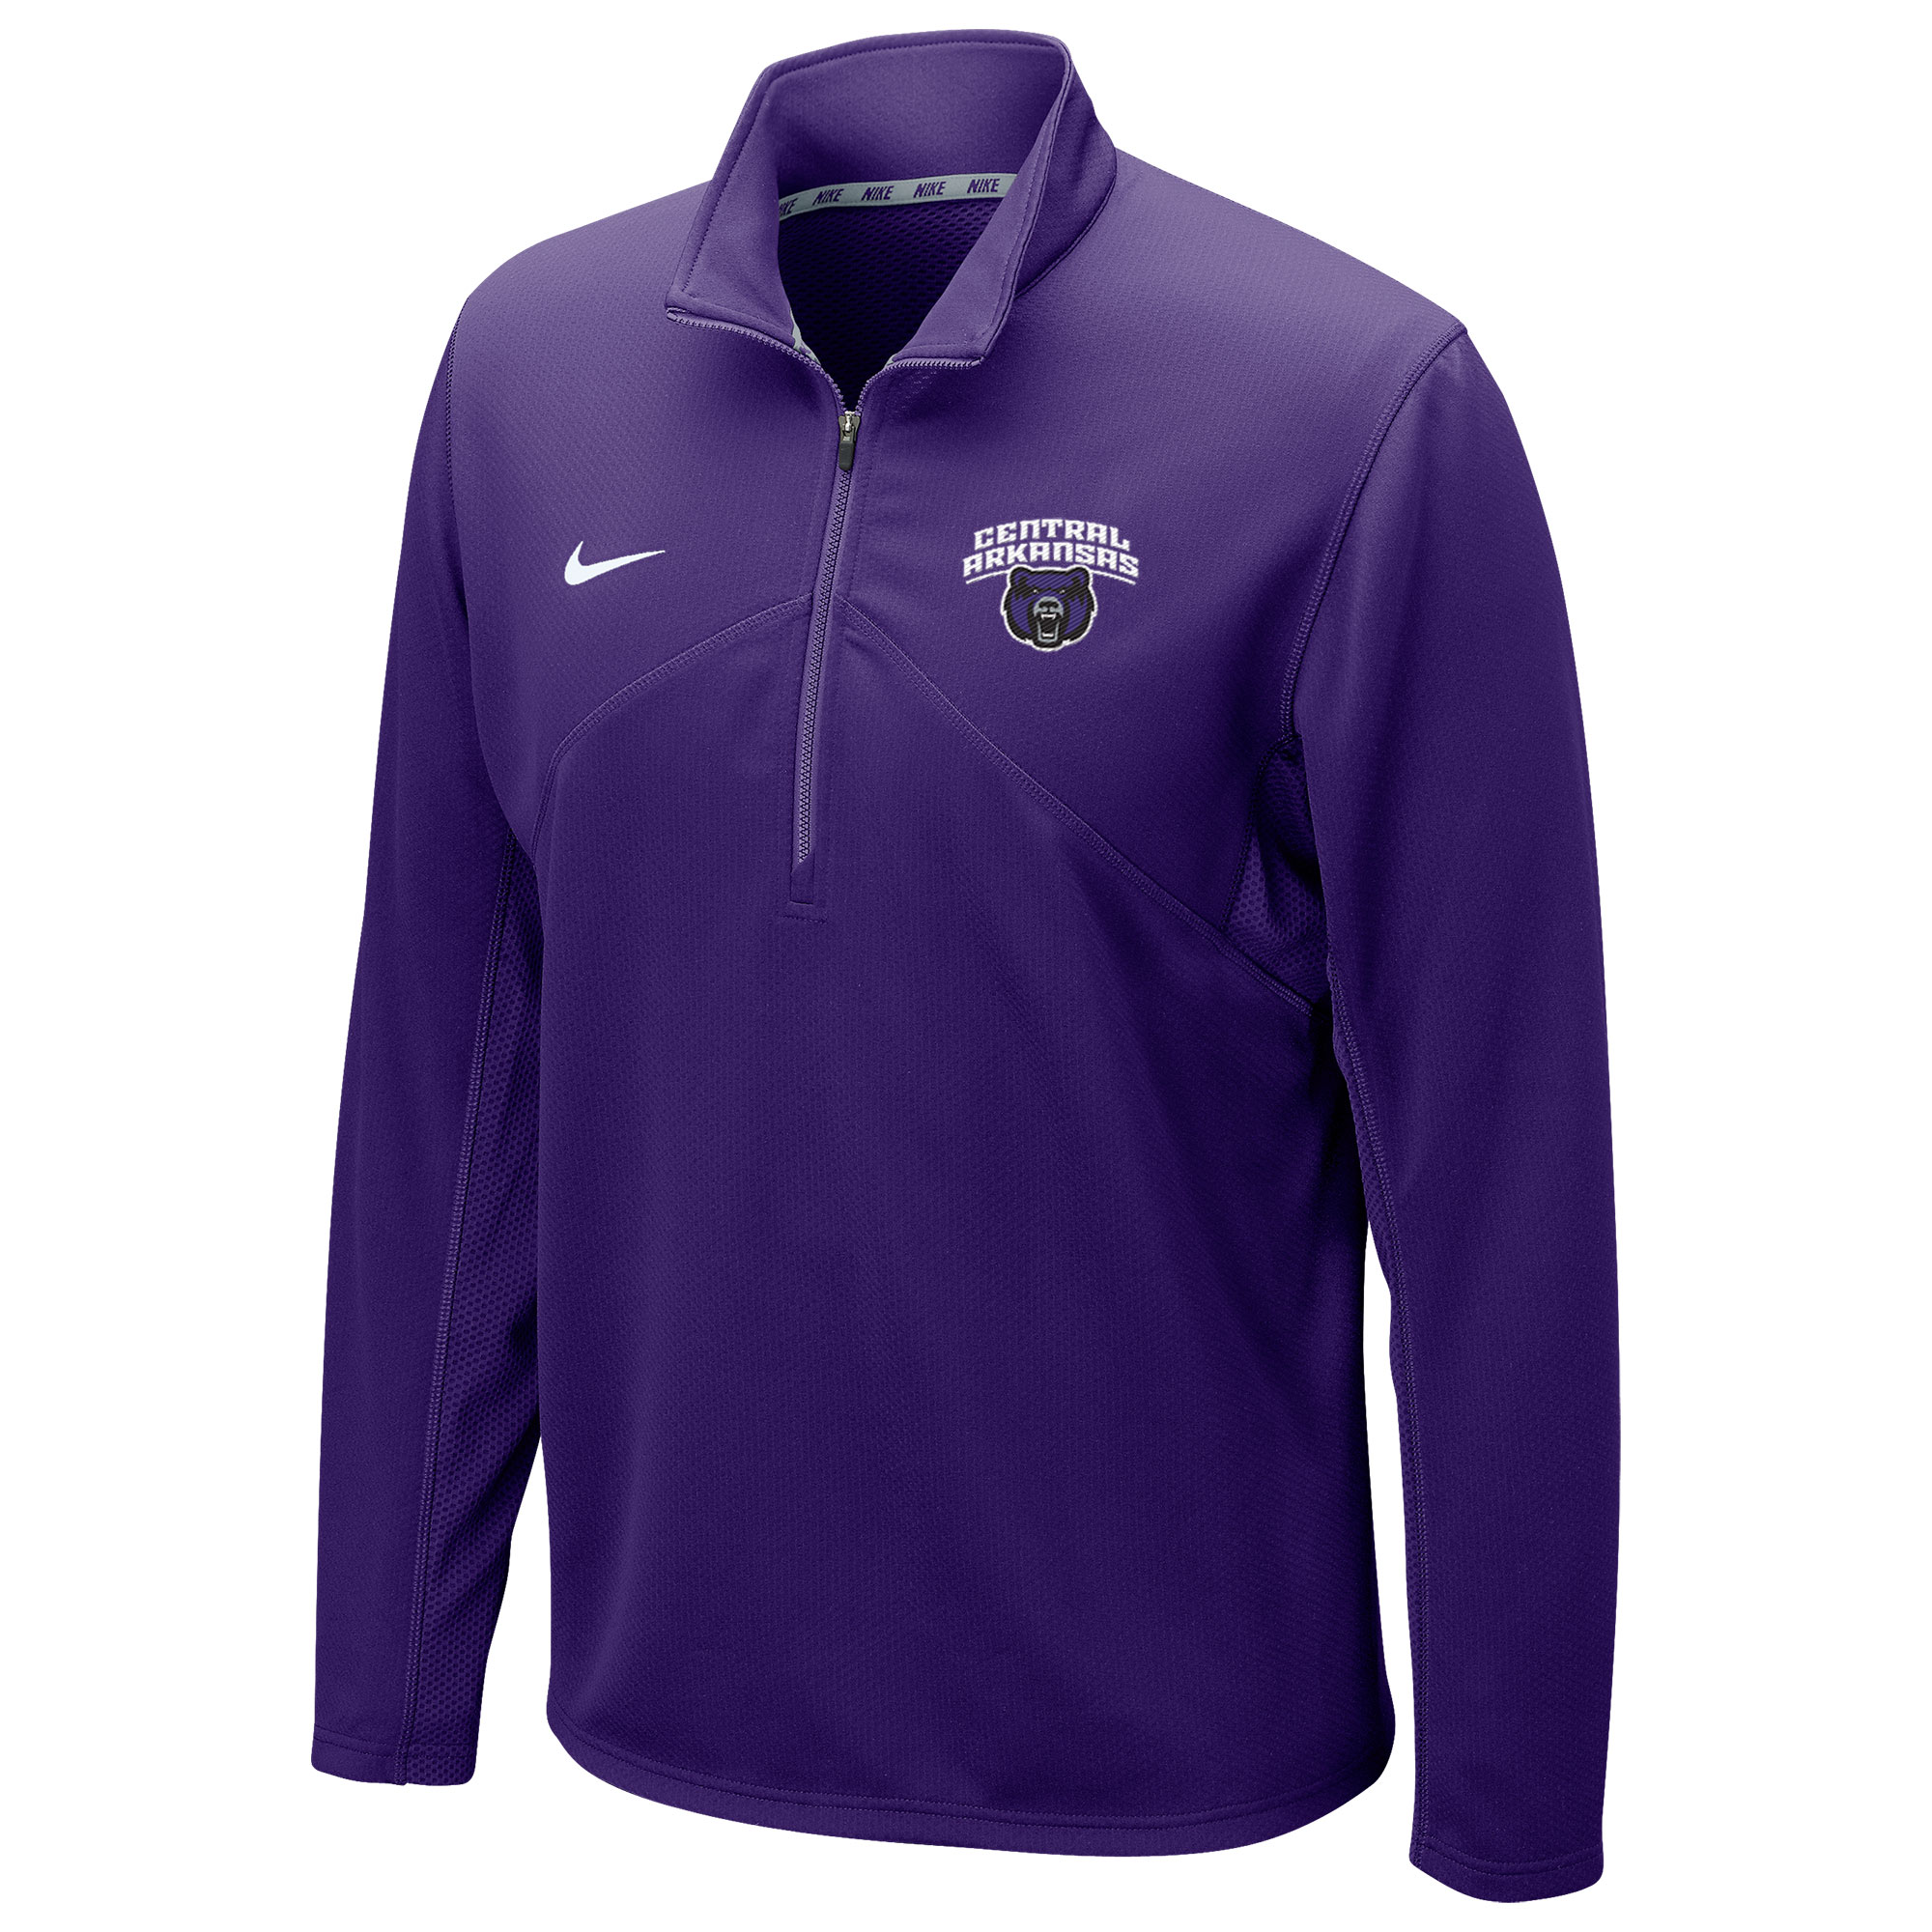 Men's DriFit Training 1/4 Zip